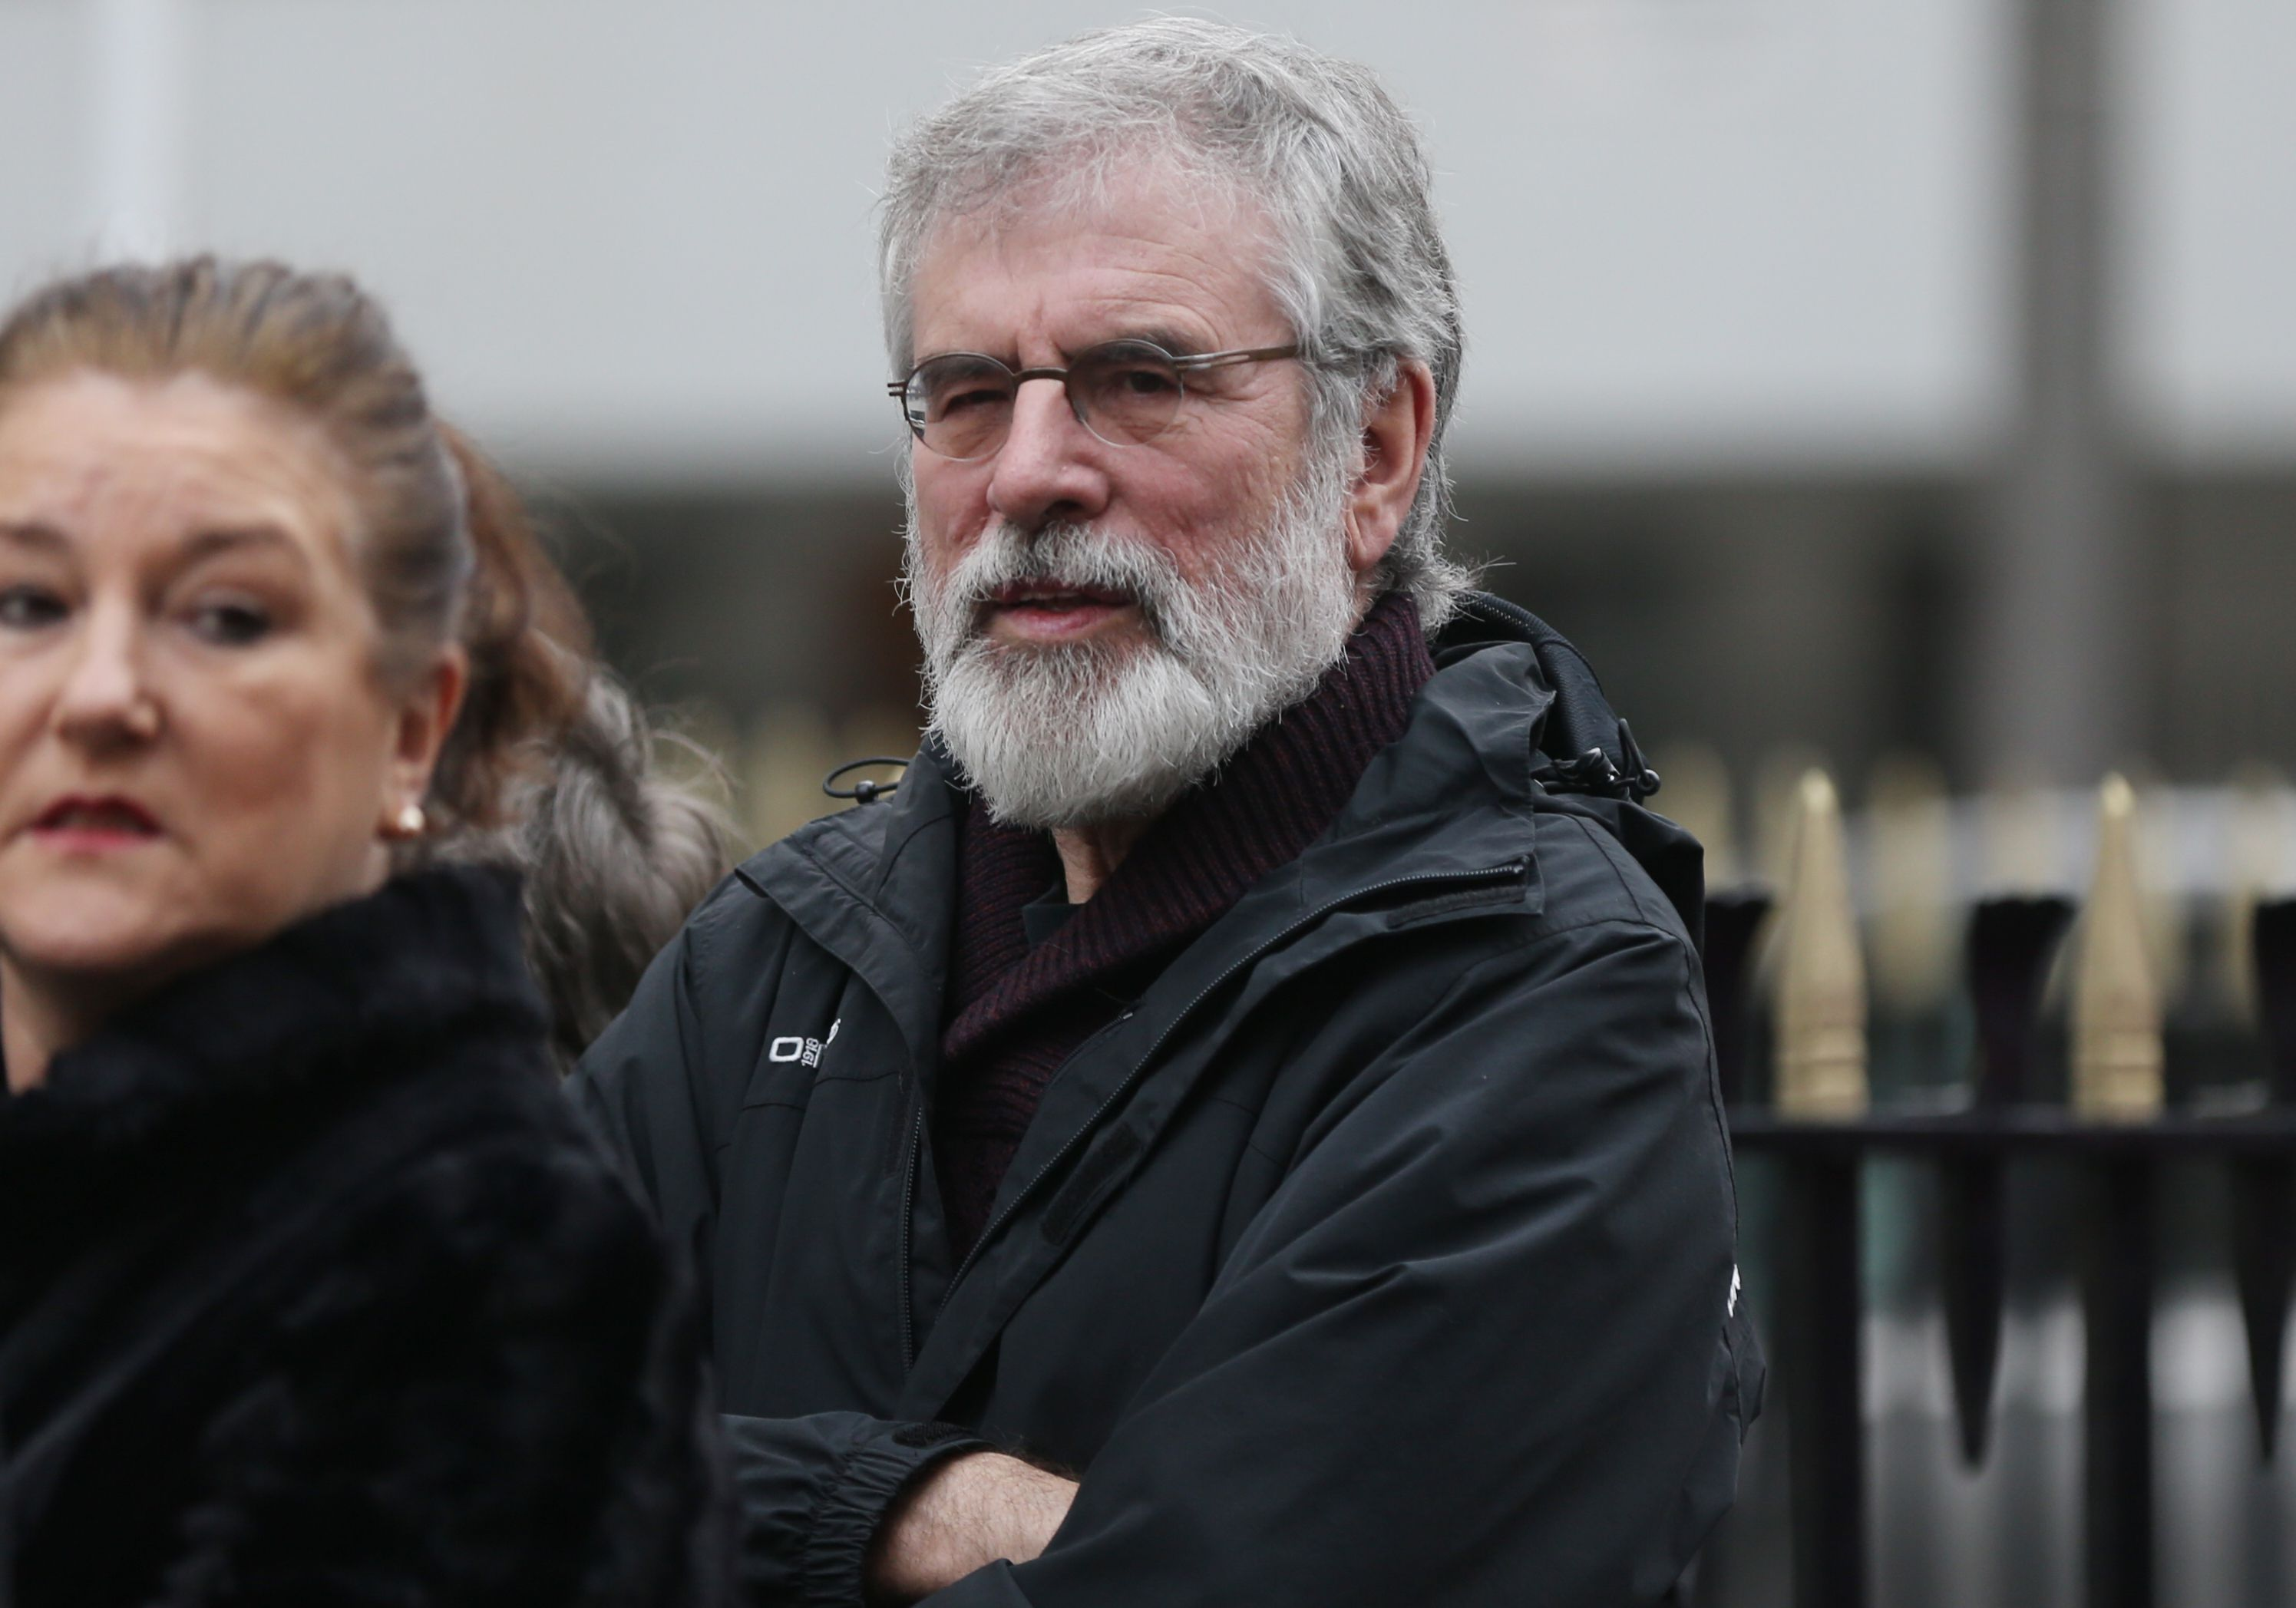 Gerry Adams photographed at the recent funeral of             actor, Jer O'Leary.